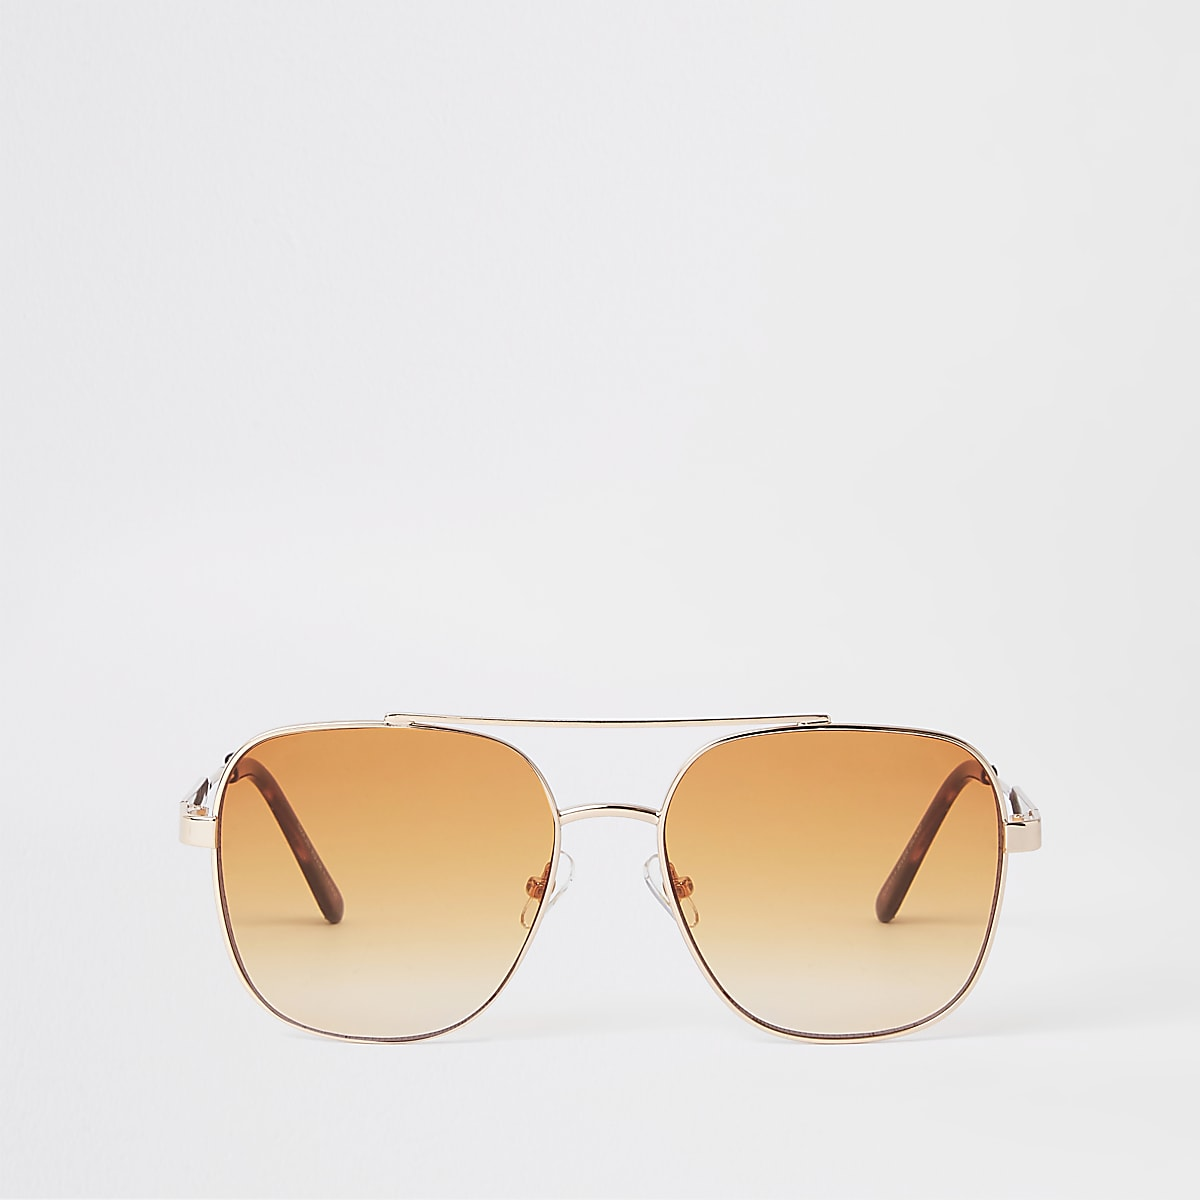 Gold tone orange lens aviator sunglasses